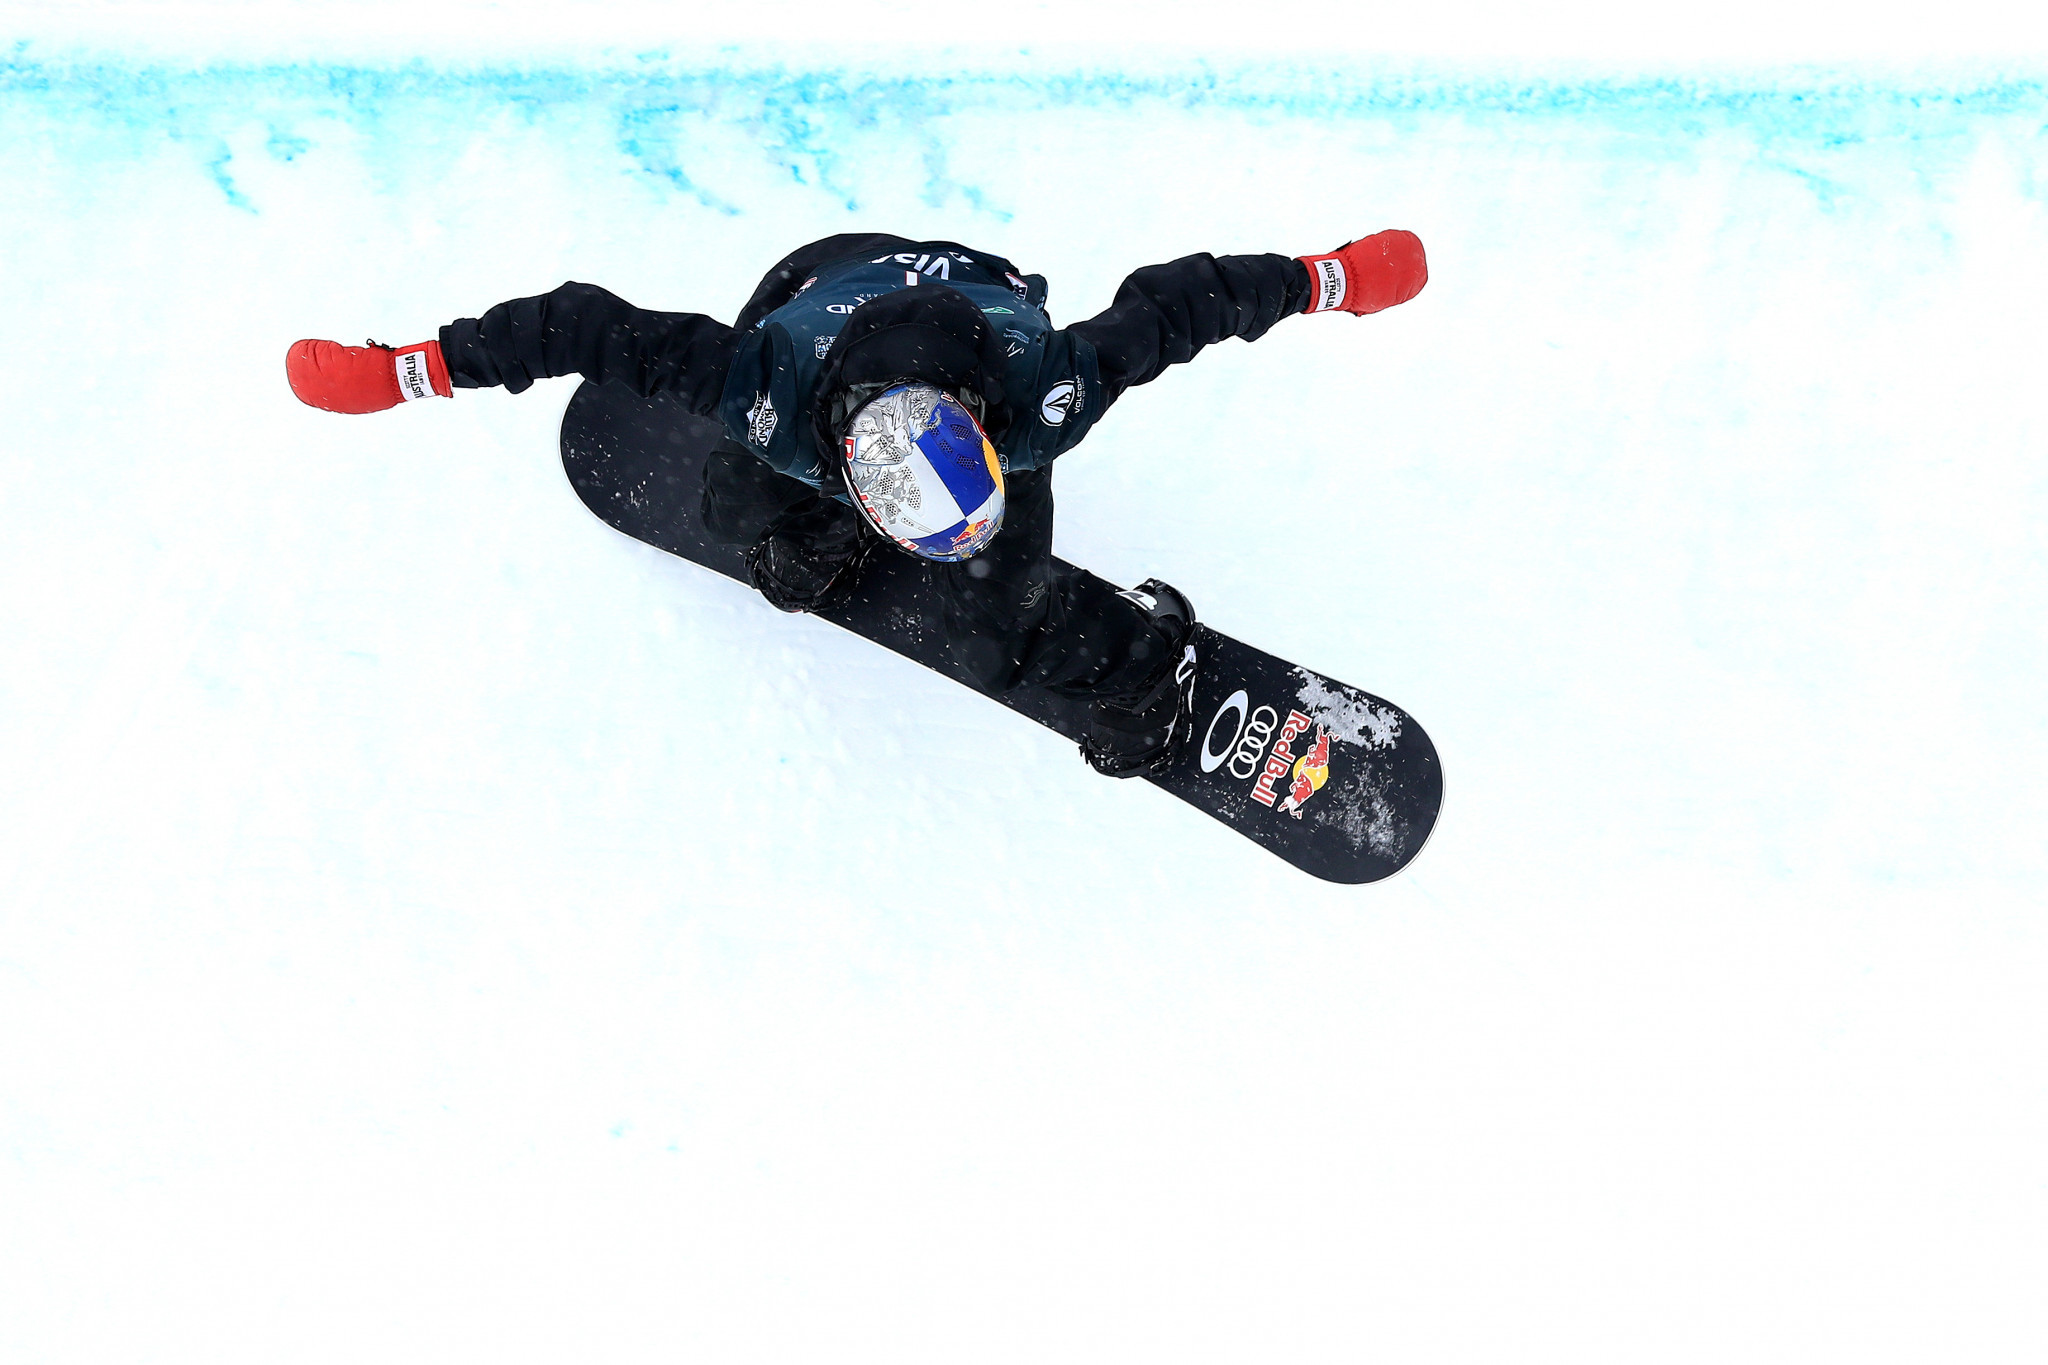 James wins men's halfpipe at FIS Snowboard World Cup in Laax for second year running